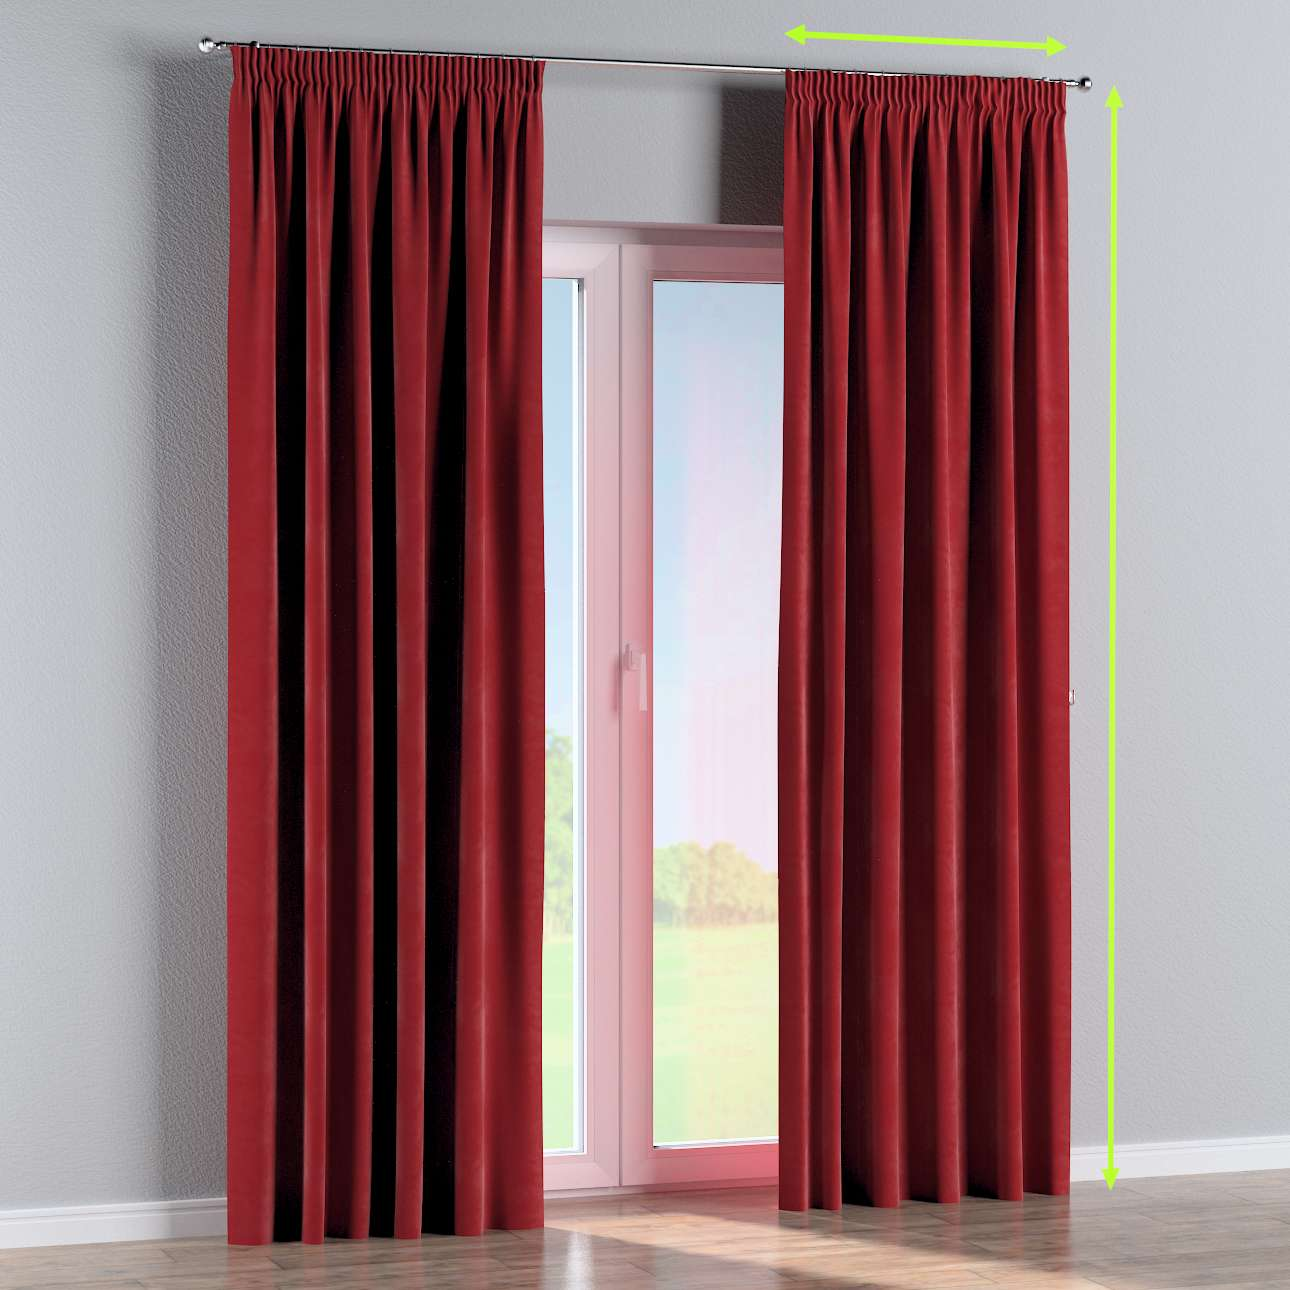 Pencil pleat lined curtain in collection Velvet, fabric: 704-15